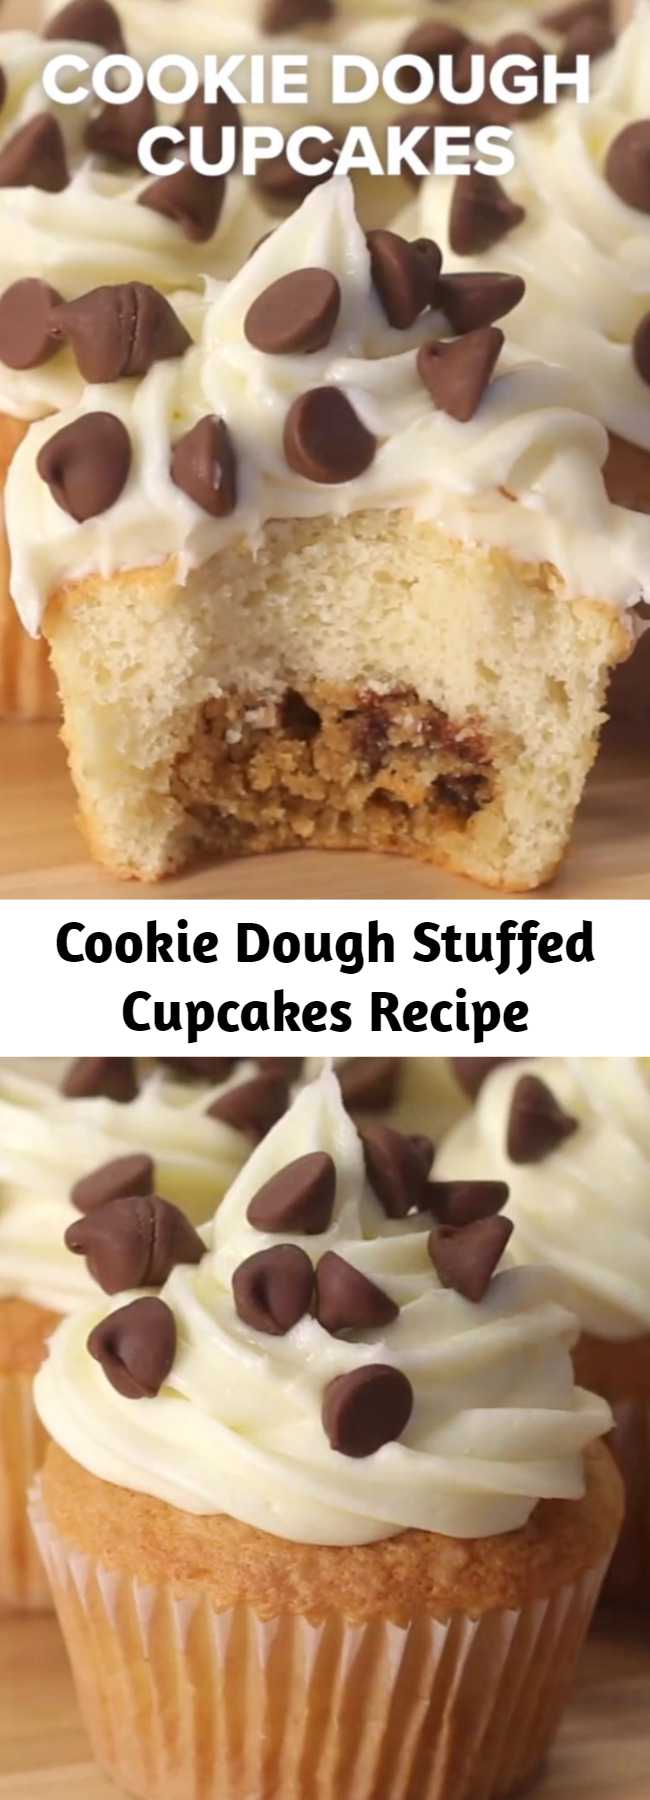 Cookie Dough Stuffed Cupcakes Recipe - Stuffing cookie dough into cupcakes might just be the best thing we've ever done.